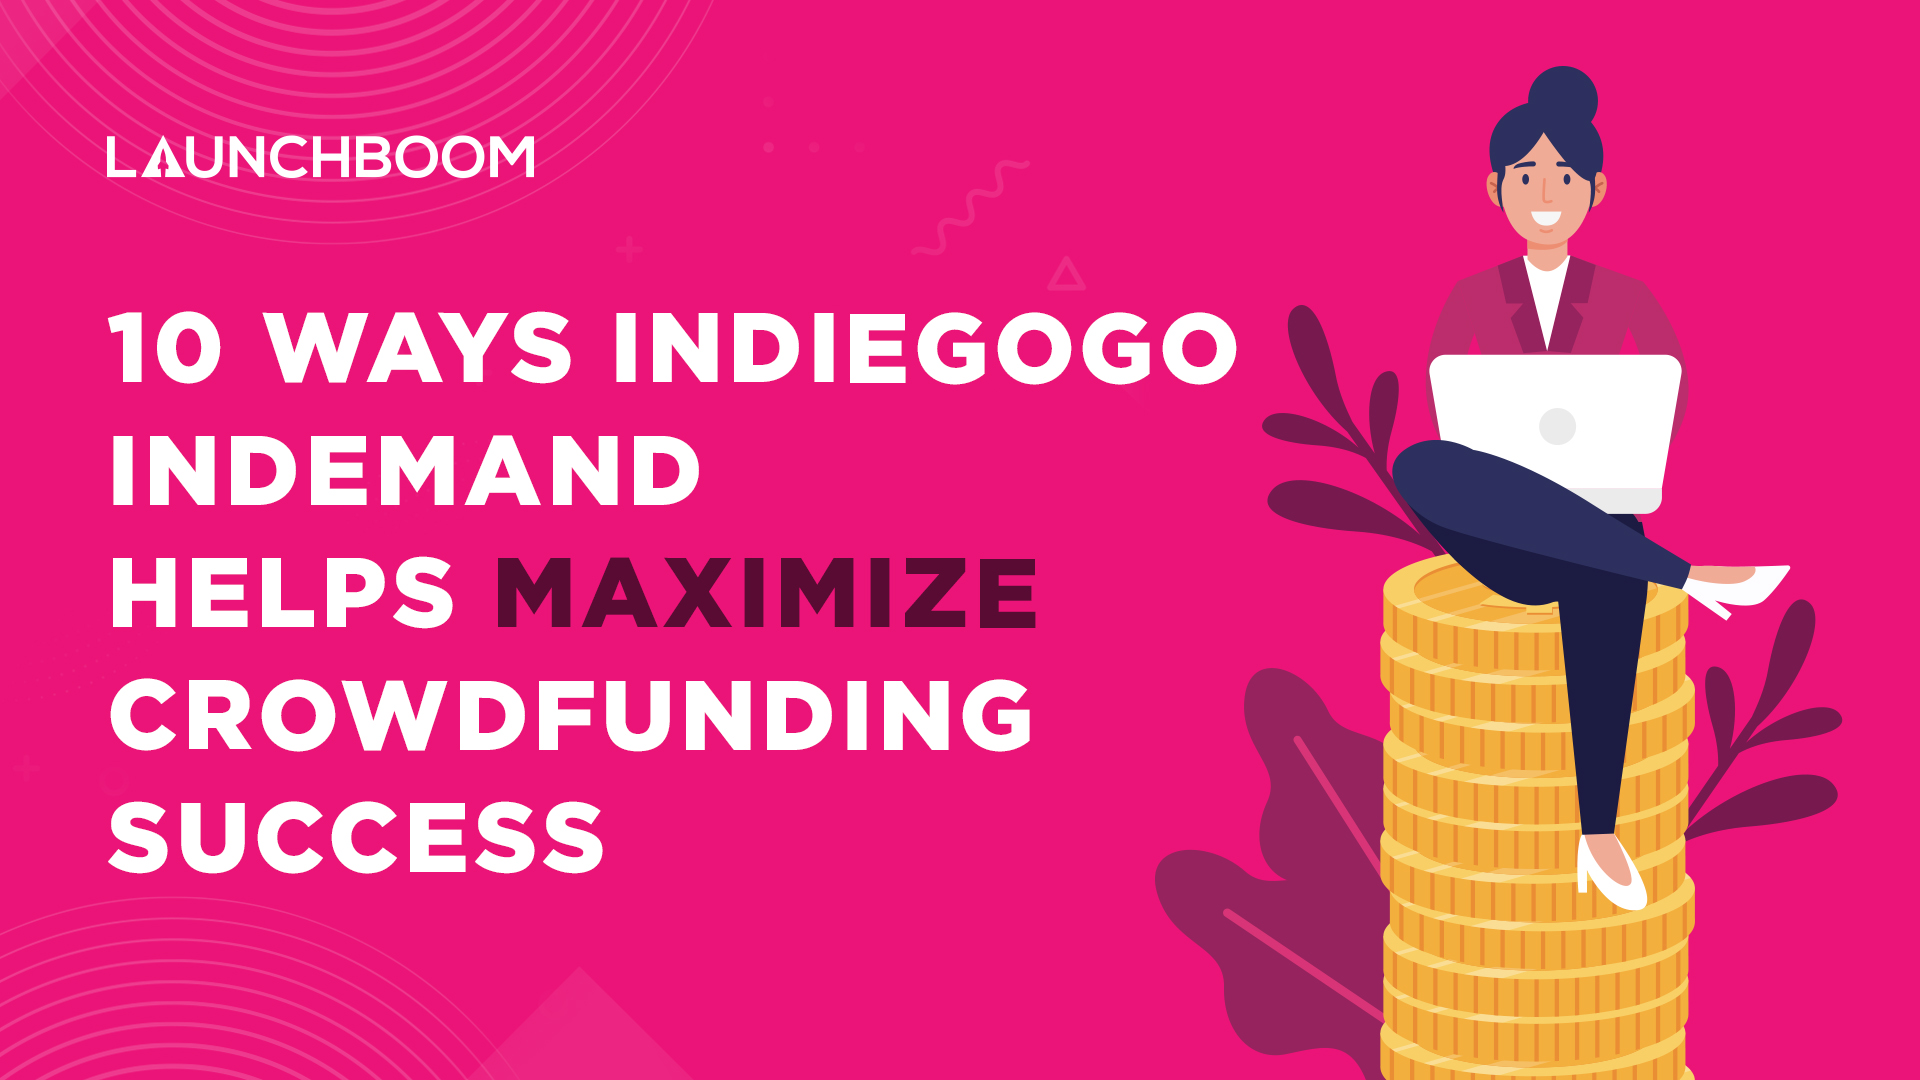 10 Ways Indiegogo InDemand Helps Maximize Crowdfunding Success